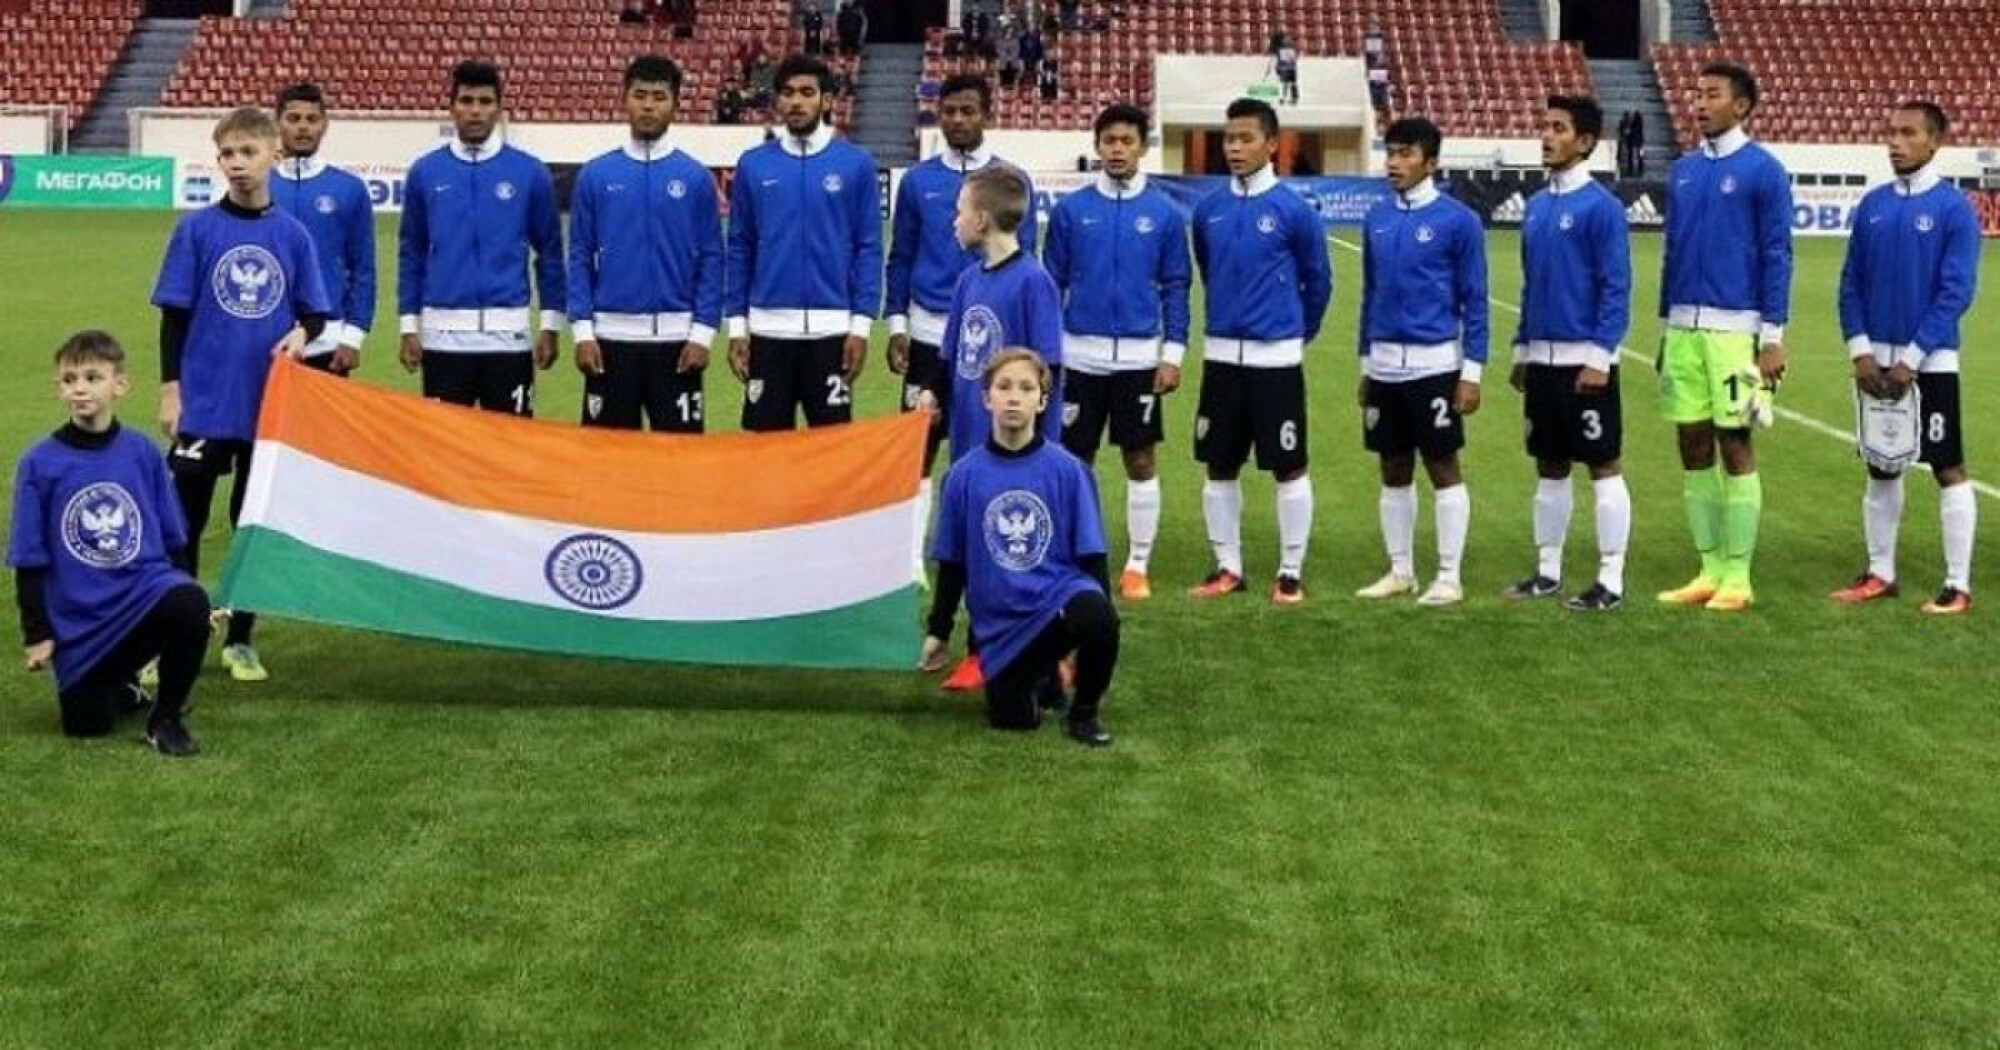 Granatkin Cup 2019: India to face hosts Russia, Bulgaria and Moldova